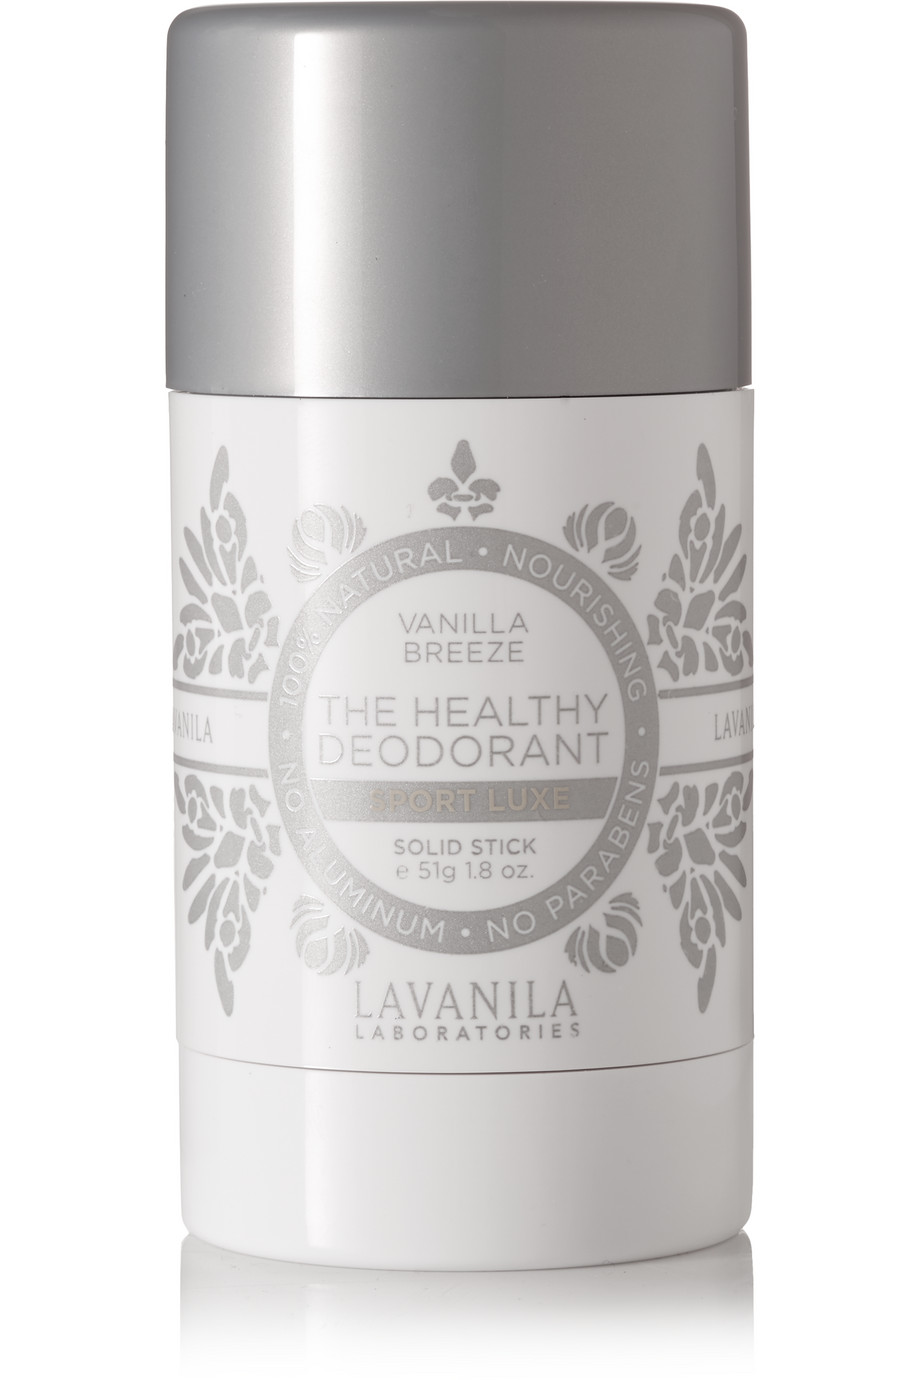 The Healthy Deodorant - Sport Luxe Vanilla Breeze, 51g, by Lavanila Laboratories